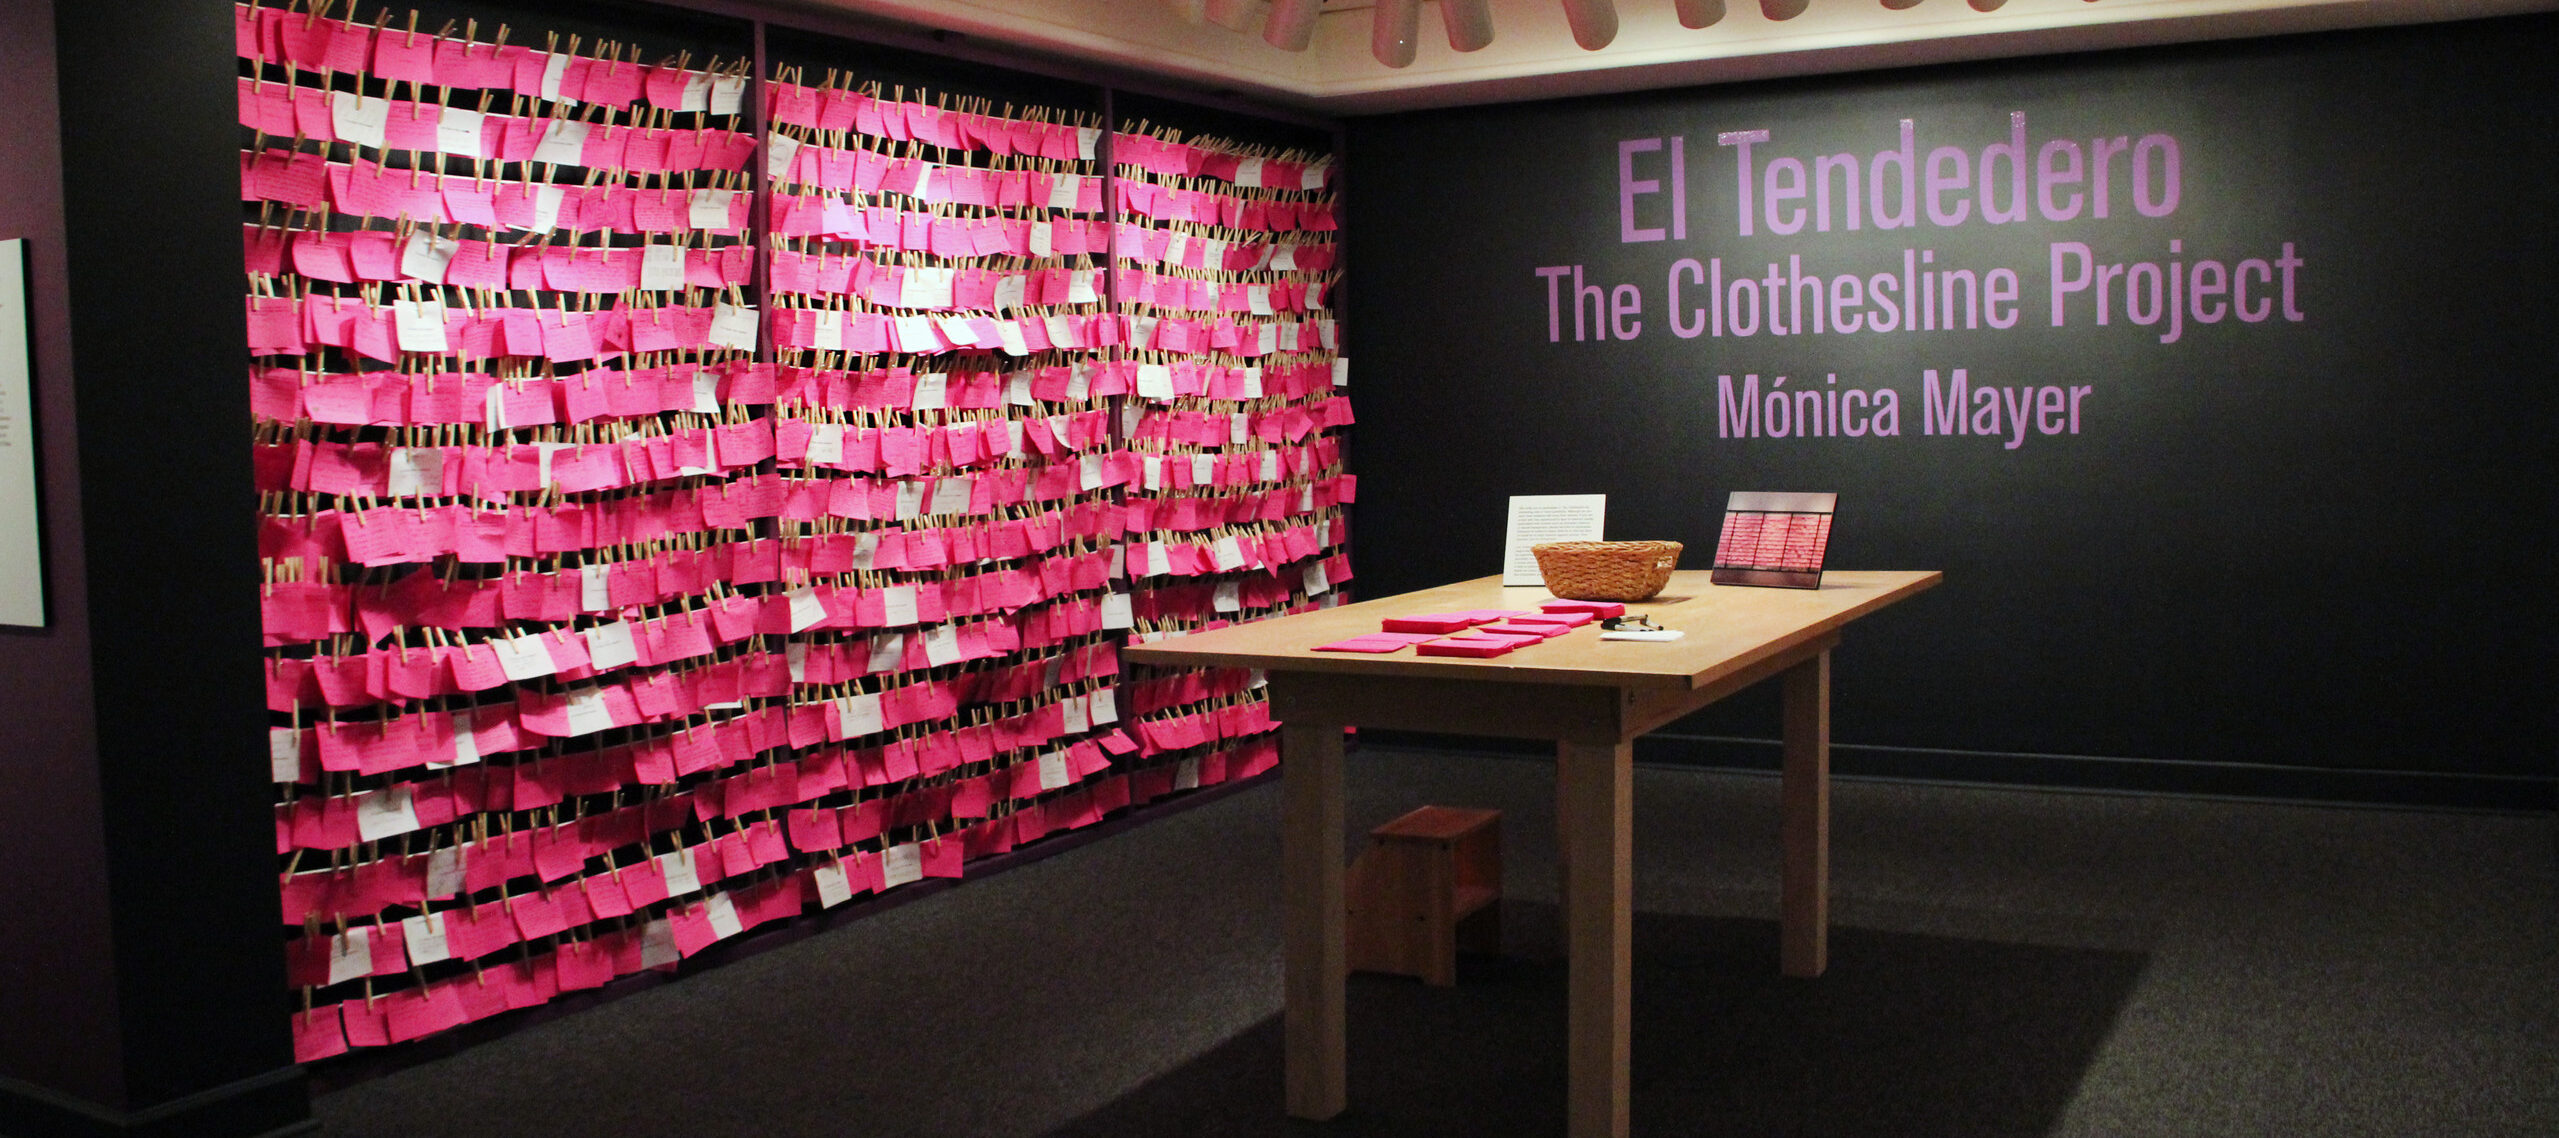 View of exhibition gallery features bright pink post-it notes line the wall from ceiling to floor. On the adjacent wall are the words in pink text: